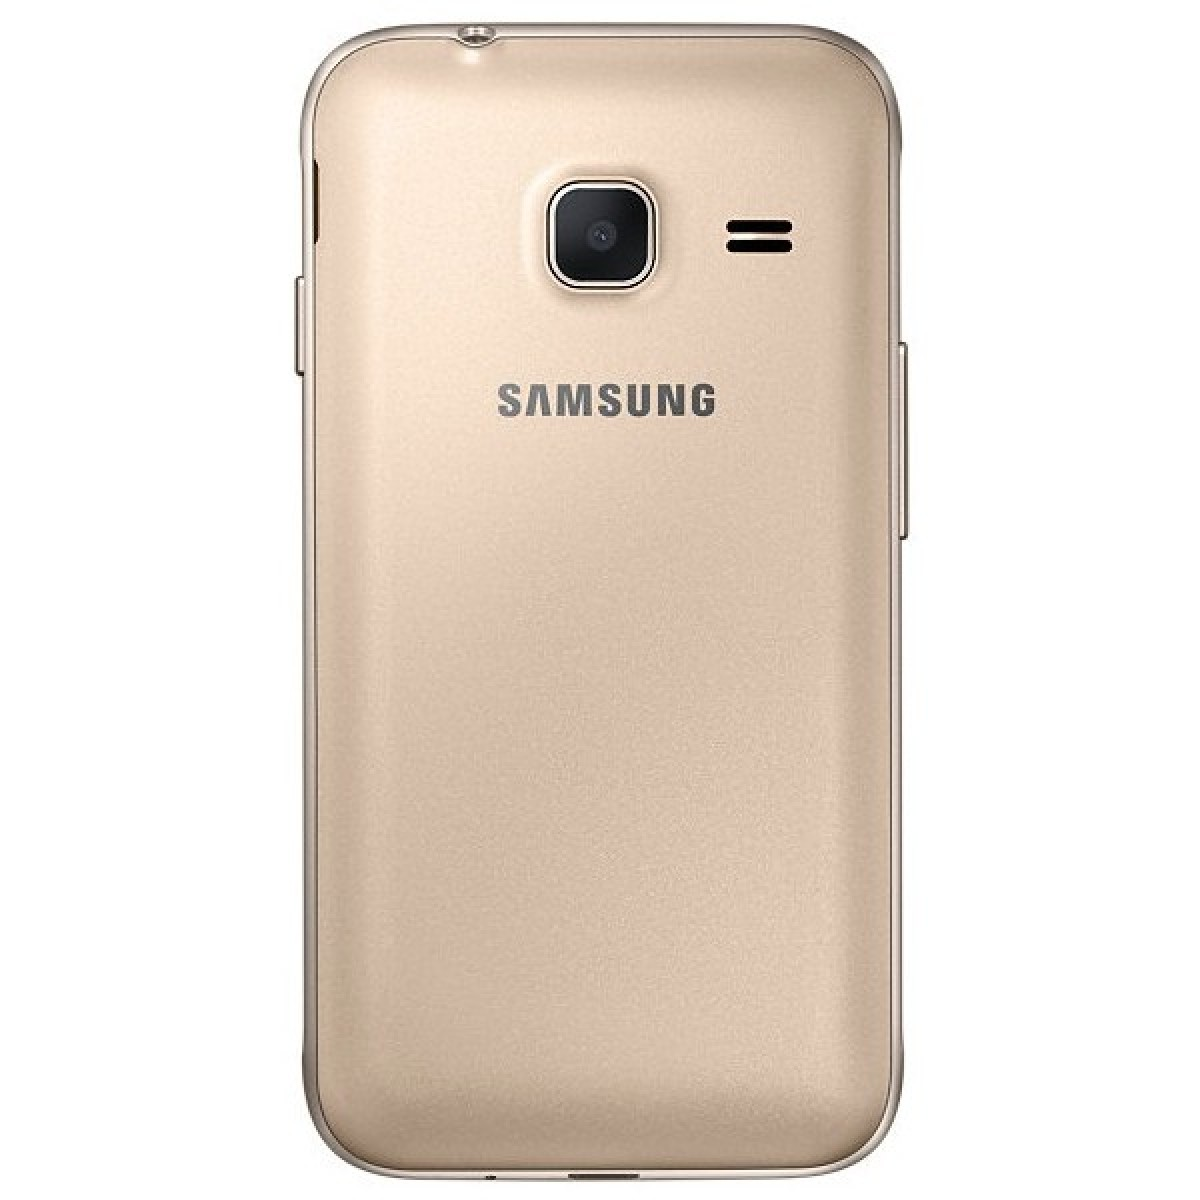 SAMSUNG Smartphone GALAXY J1 MINI SM-105HD 1